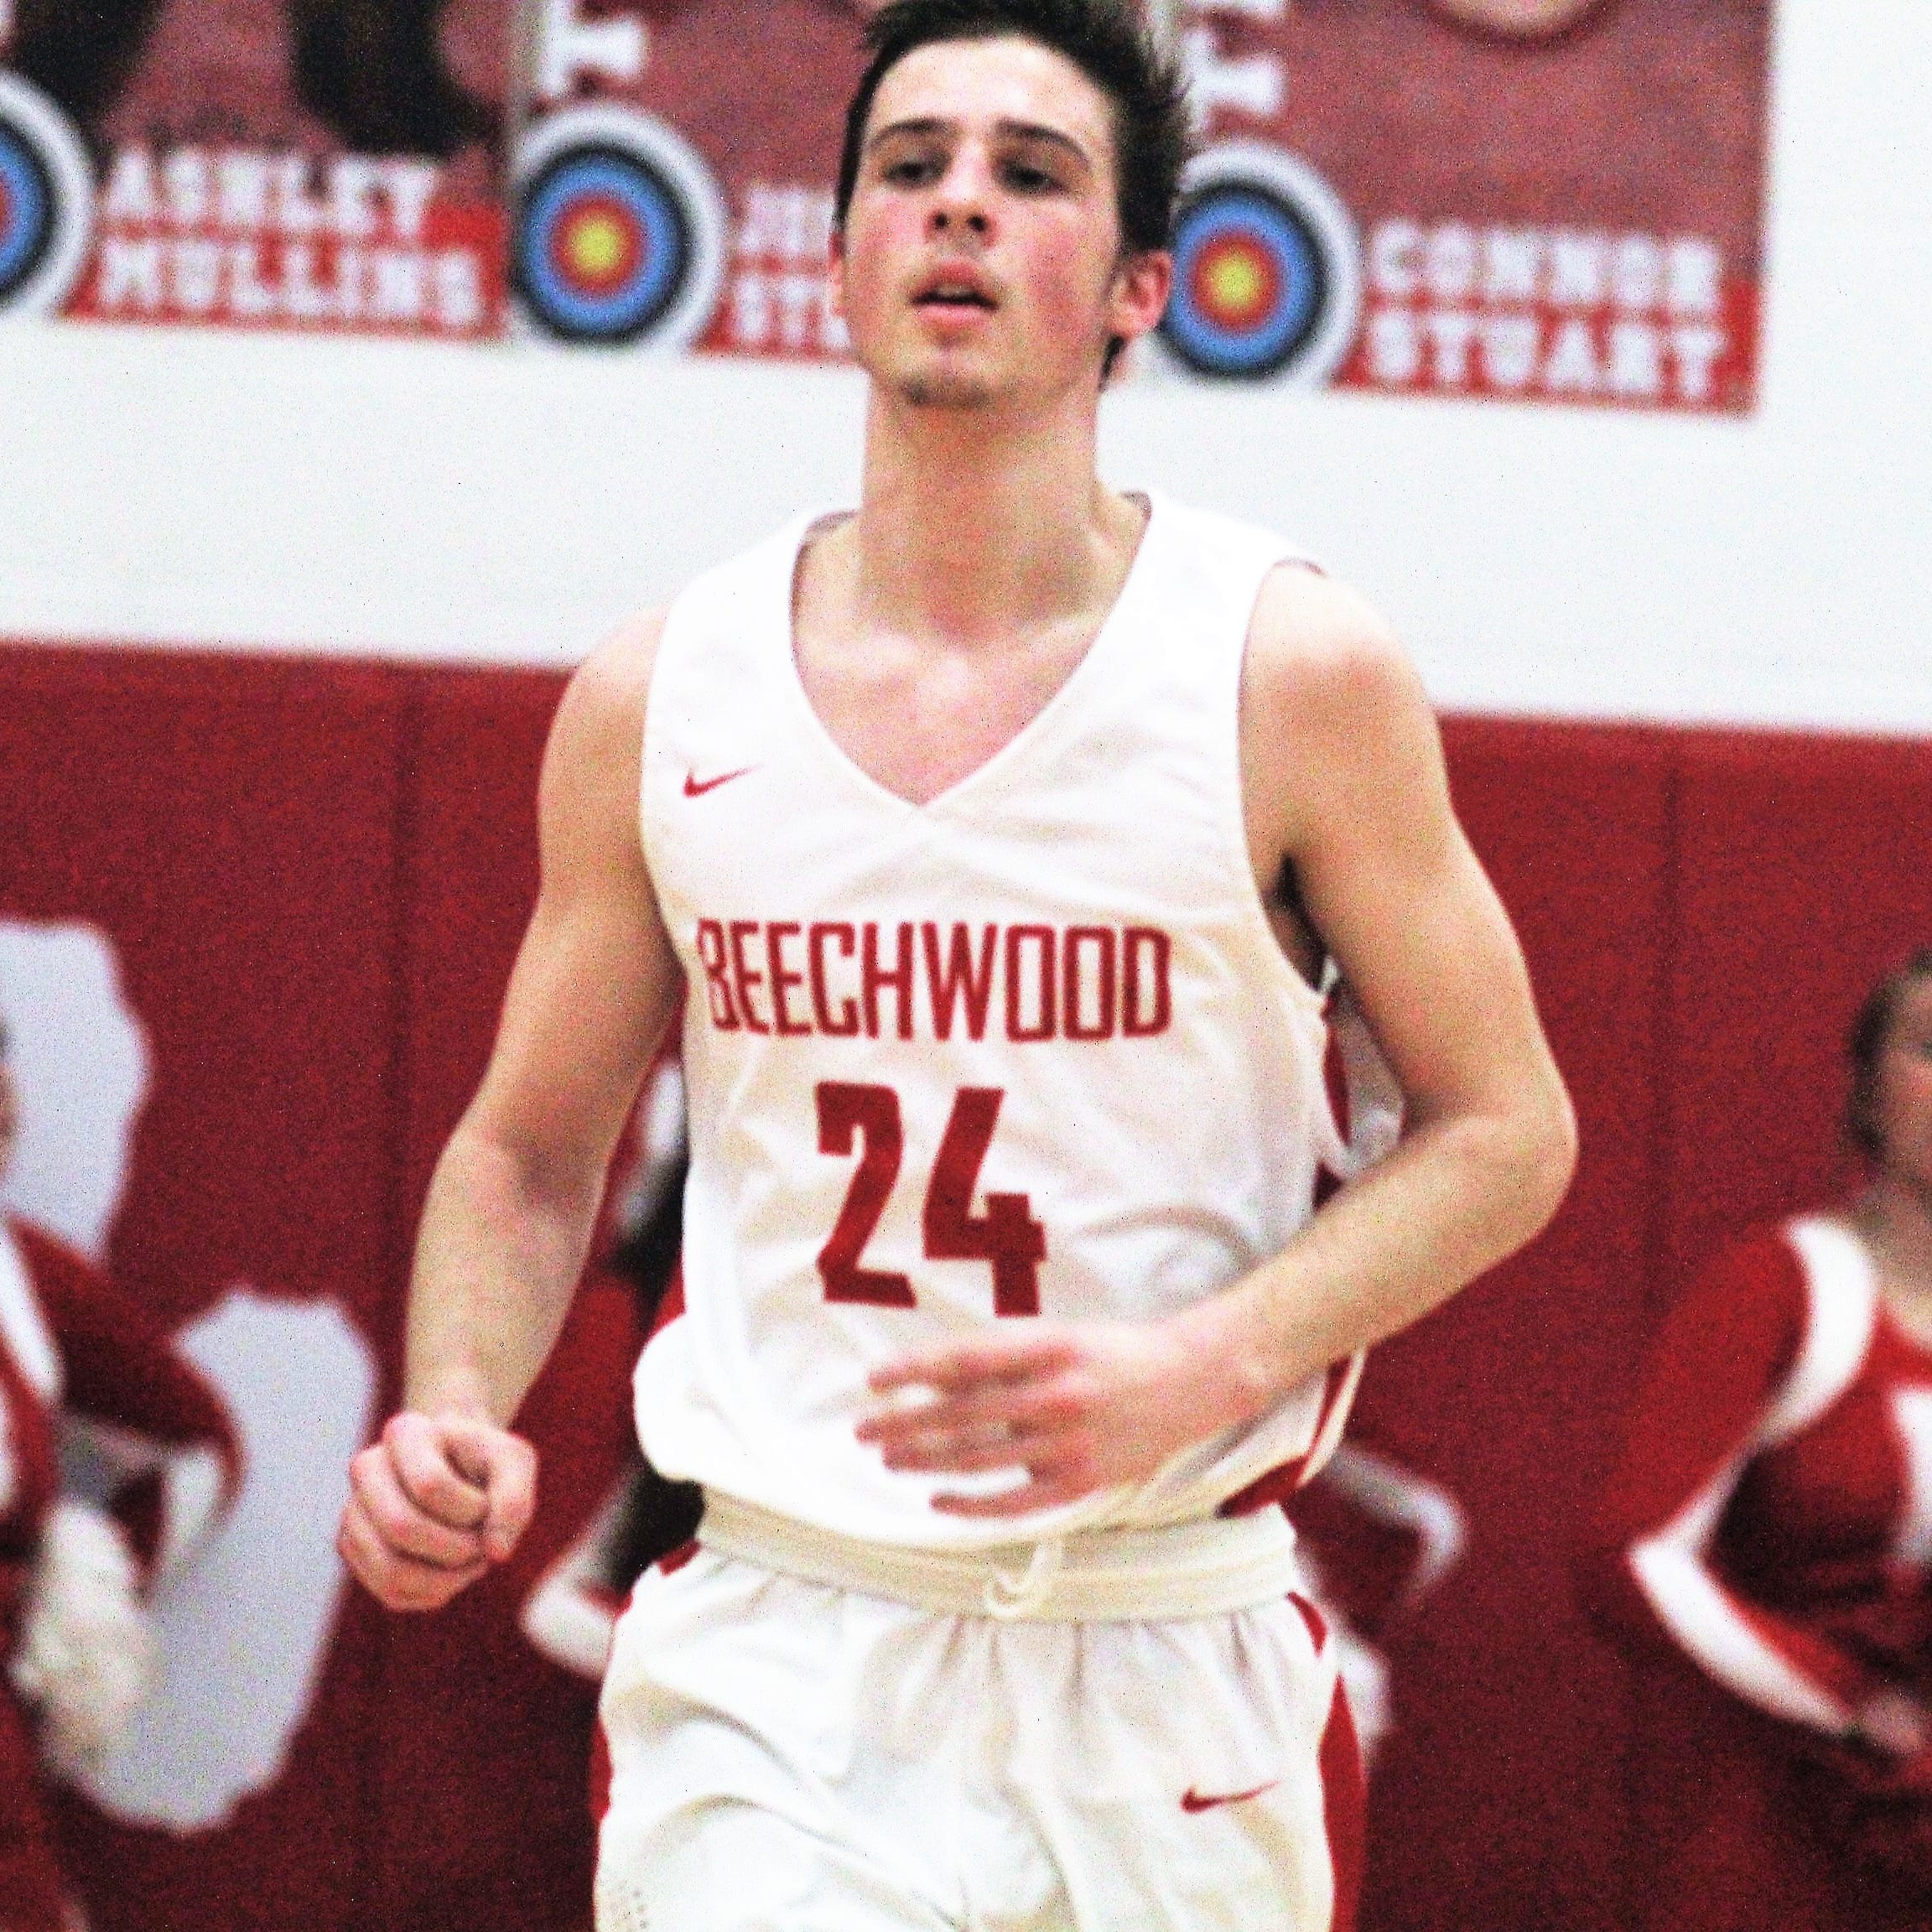 """Beechwood sophomore Scotty Draud as Newport defeated Beechwood 53-52 in the first round of the All """"A"""" 9th Region boys basketball tournament Jan. 14, 2019 at Beechwood HS, Fort Mitchell KY."""